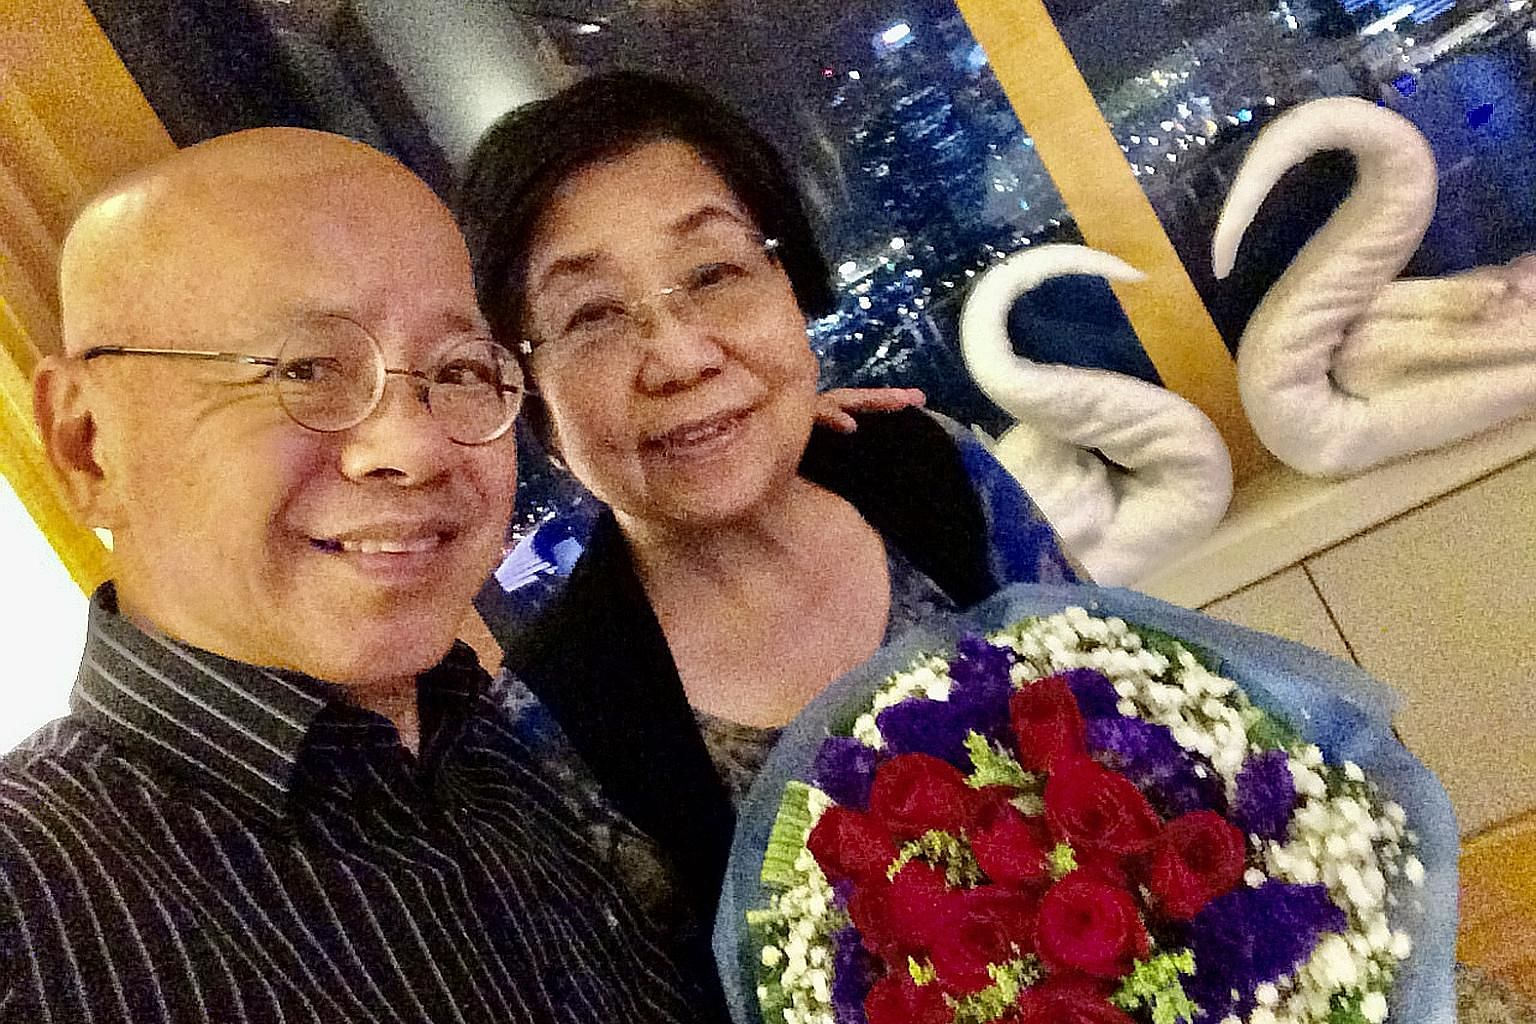 Singapore Kindness Movement general secretary William Wan and his wife Ruth celebrating their 45th wedding anniversary in 2015. After 55 years of working, he is grateful for having a wife of 50 years and a family of 11 scattered across the world.